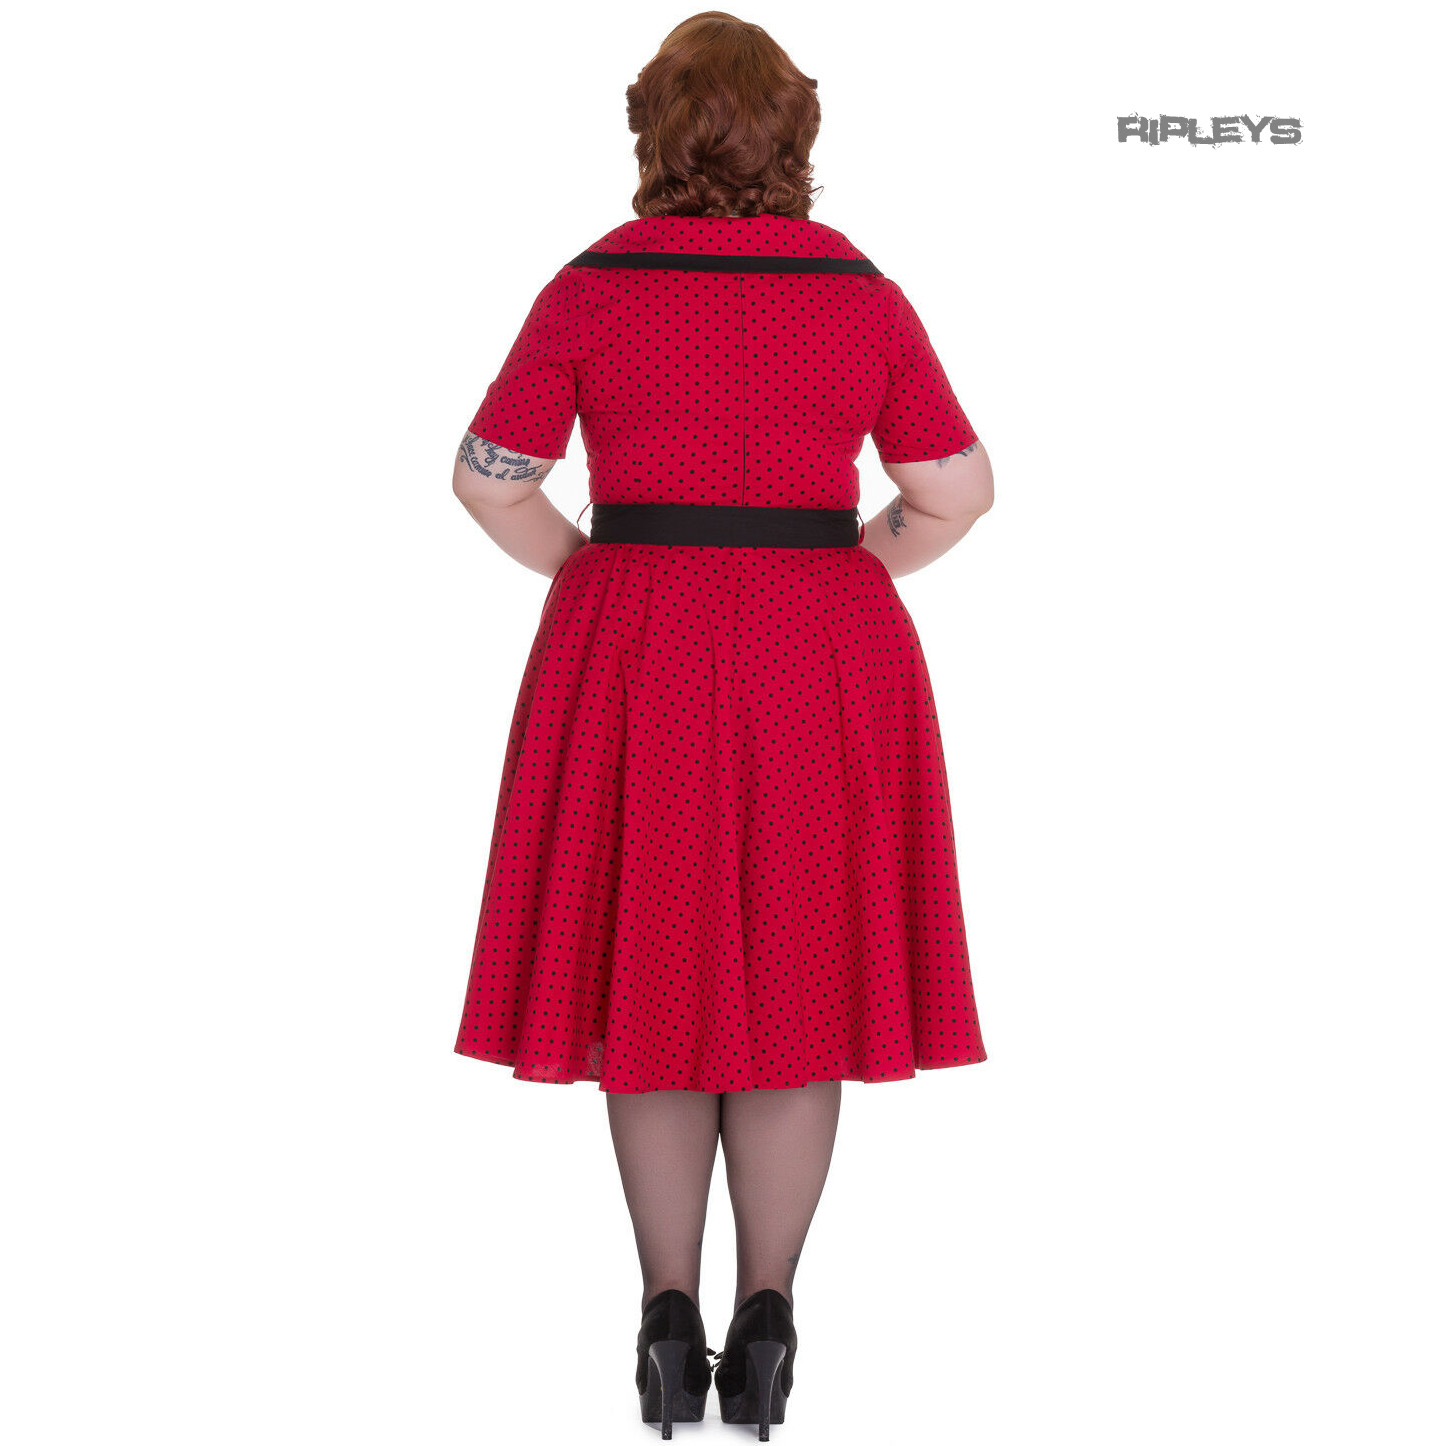 Hell-Bunny-40s-50s-Pin-Up-Swing-Dress-MIMI-Polka-Dot-Black-Red-All-Sizes thumbnail 4